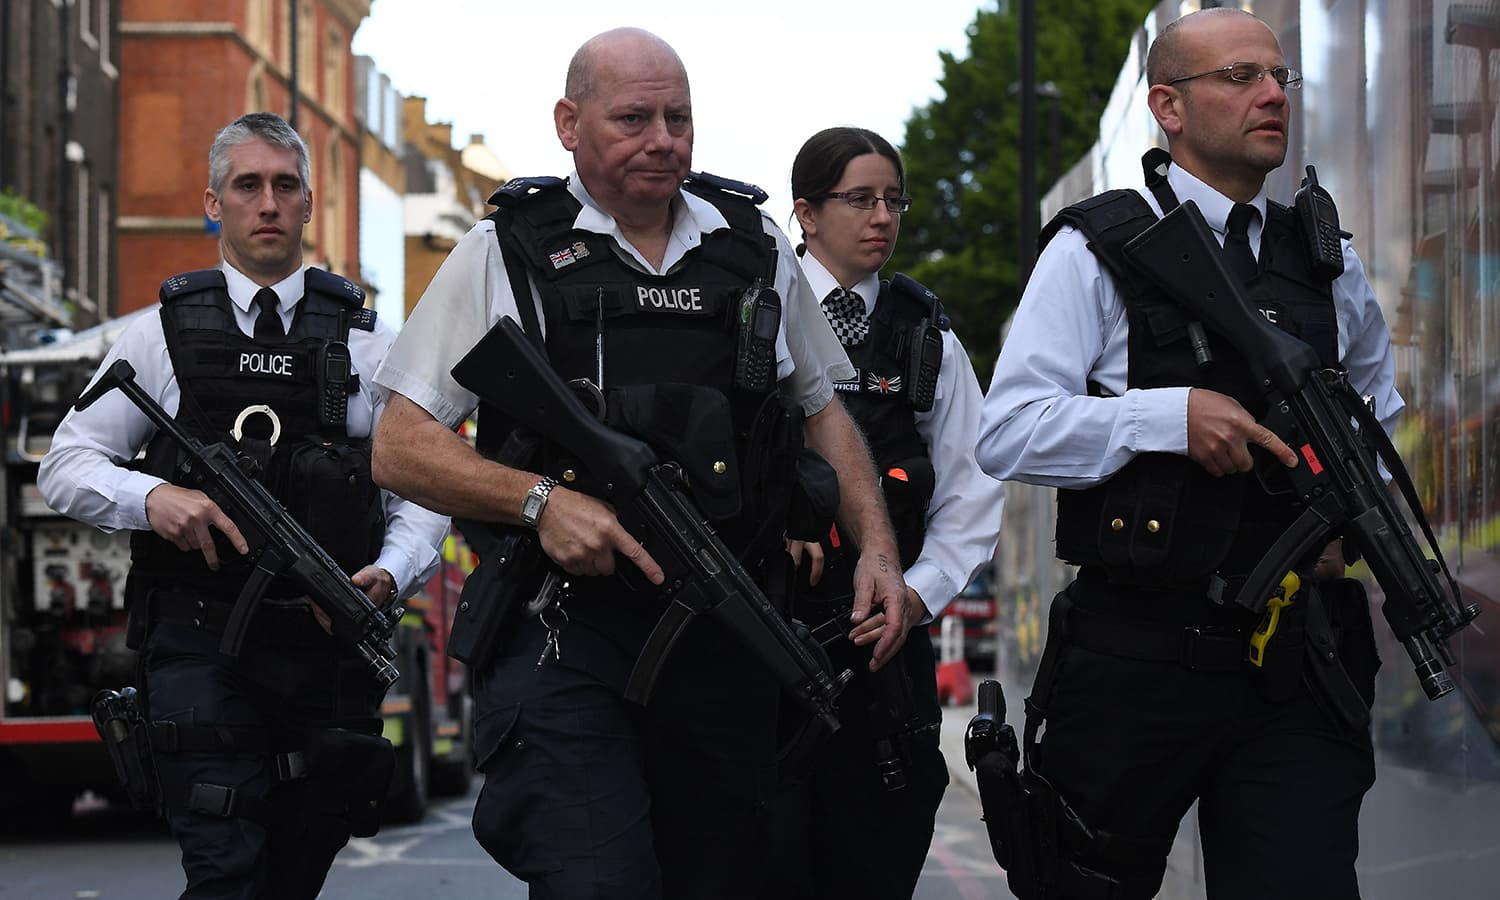 Armed police officers patrol the streets from Borough Market towards The Shard in London.─AFP